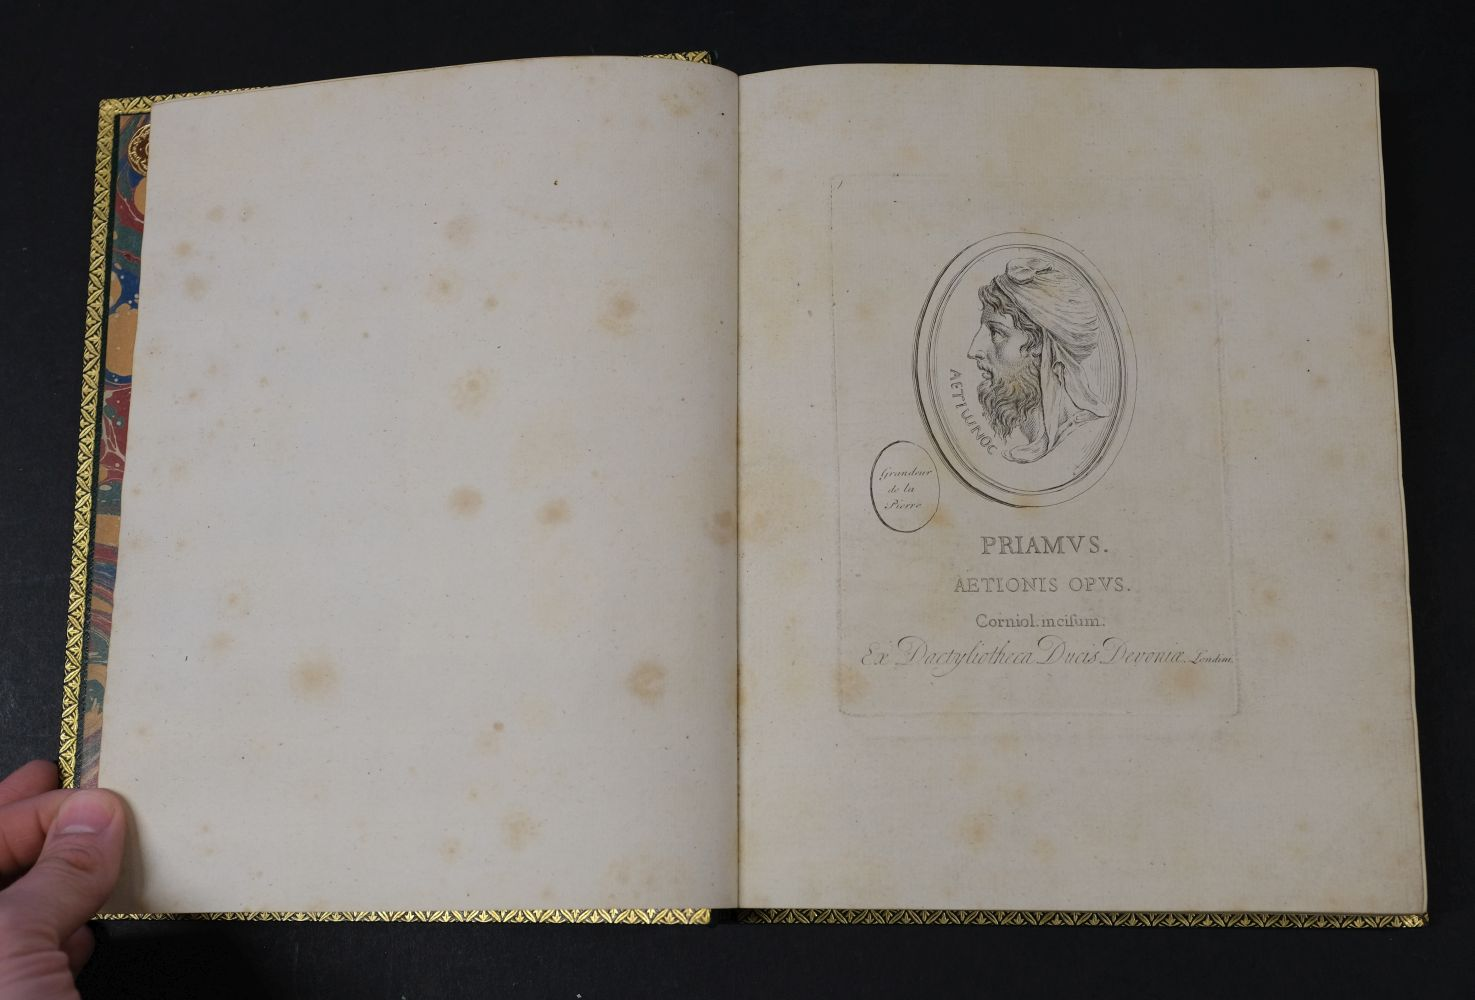 Devonshire Gems. Duke of Devonshire's Collection of Gems, privately printed, circa 1790 - Image 10 of 16